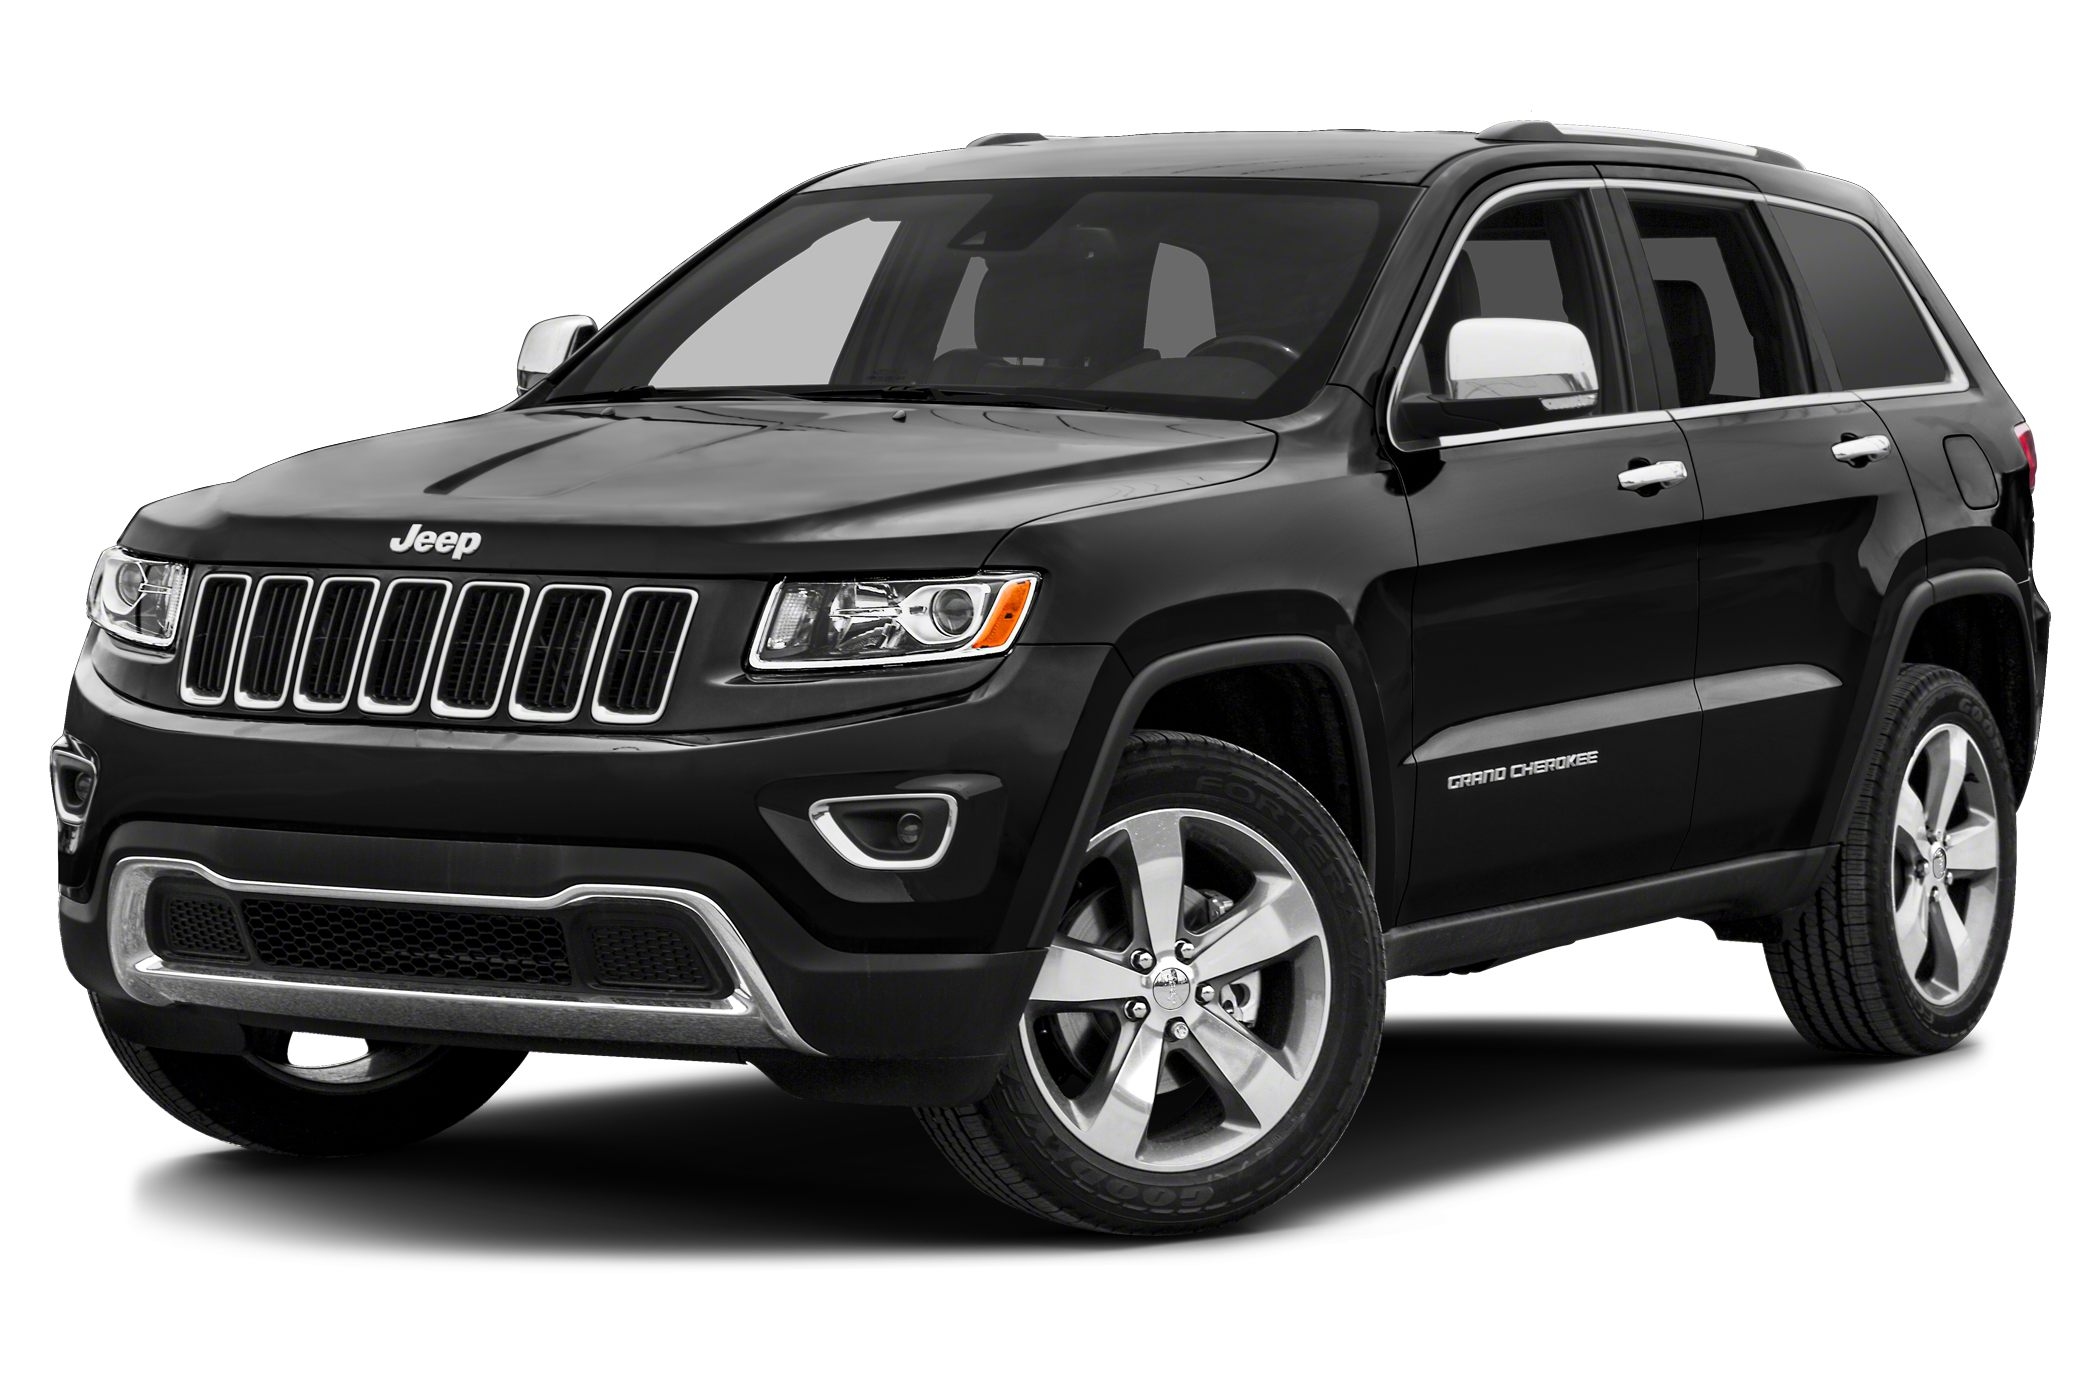 2015 Jeep Grand Cherokee Limited SUV for sale in Anderson for $44,204 with 2 miles.